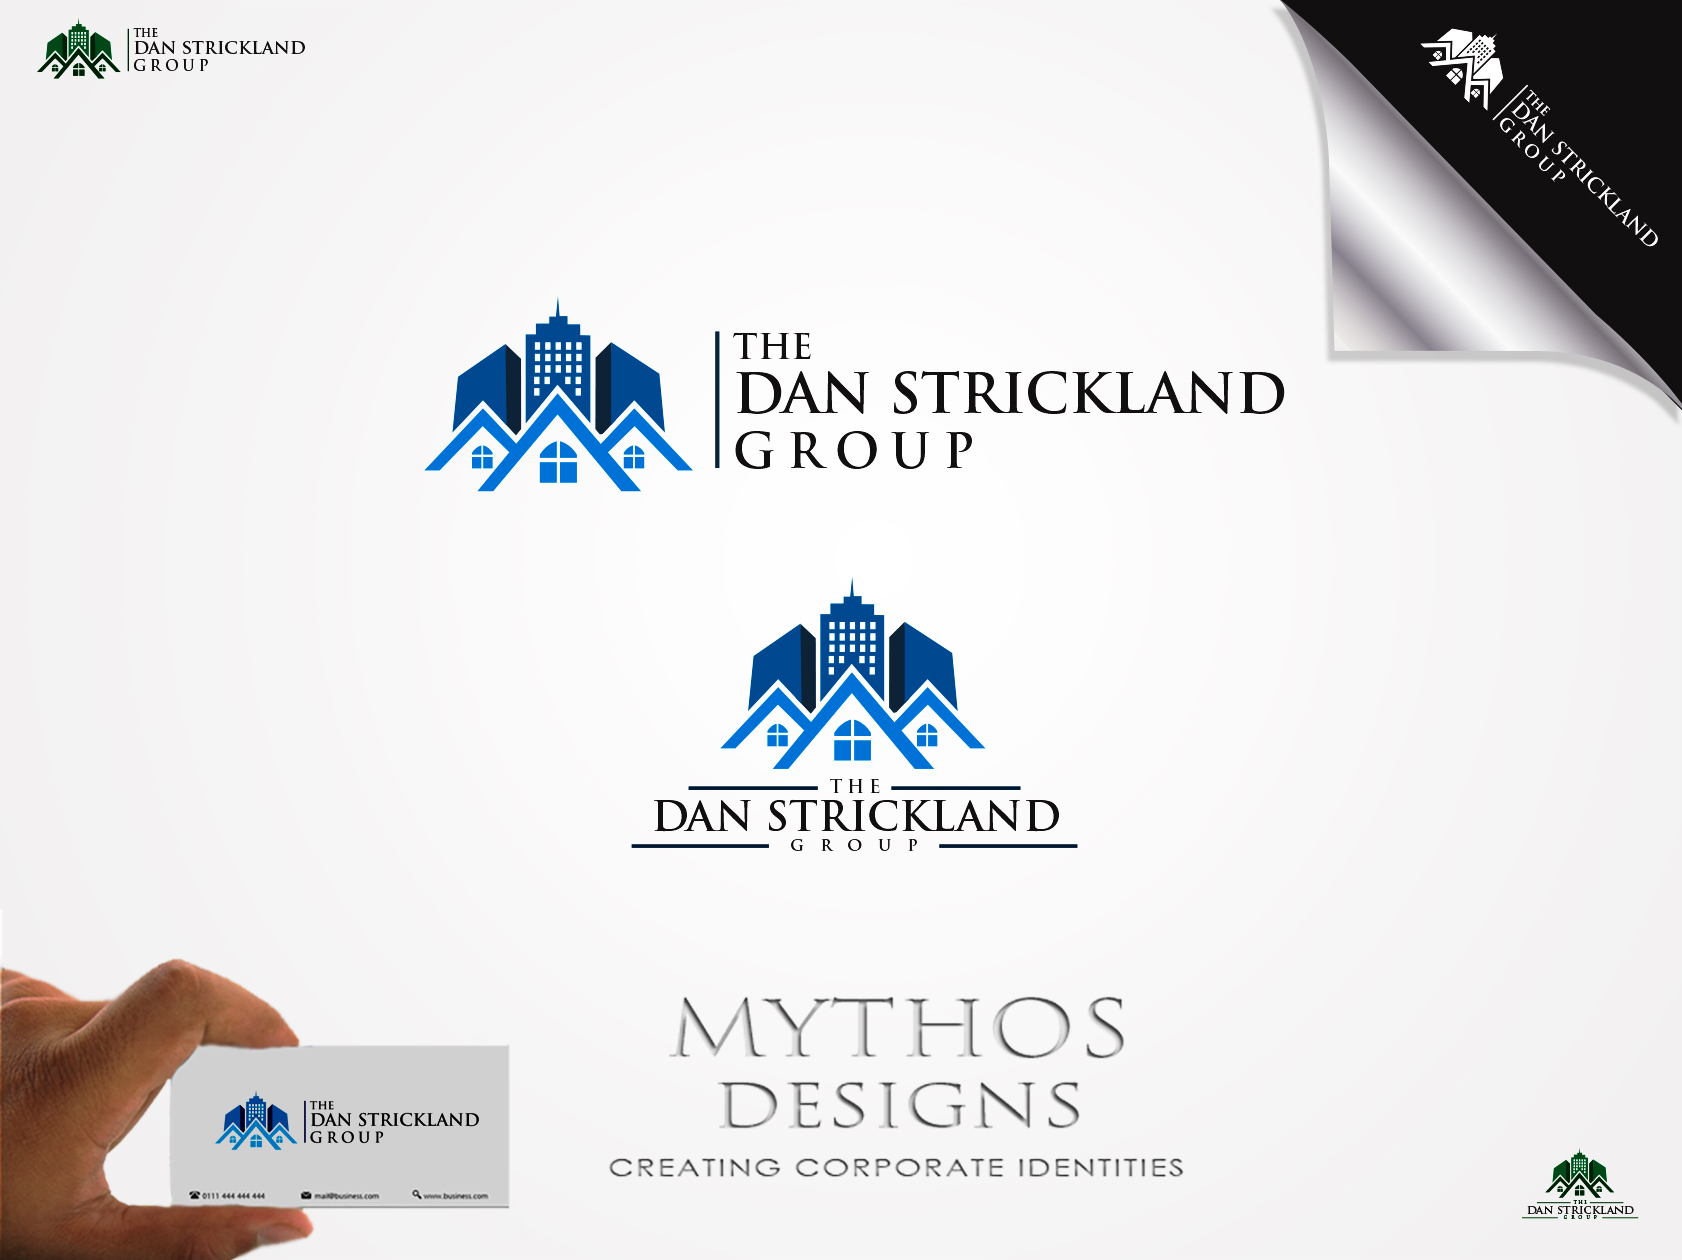 Logo Design by Mythos Designs - Entry No. 320 in the Logo Design Contest Creative Logo Design for The Dan Strickland Group.